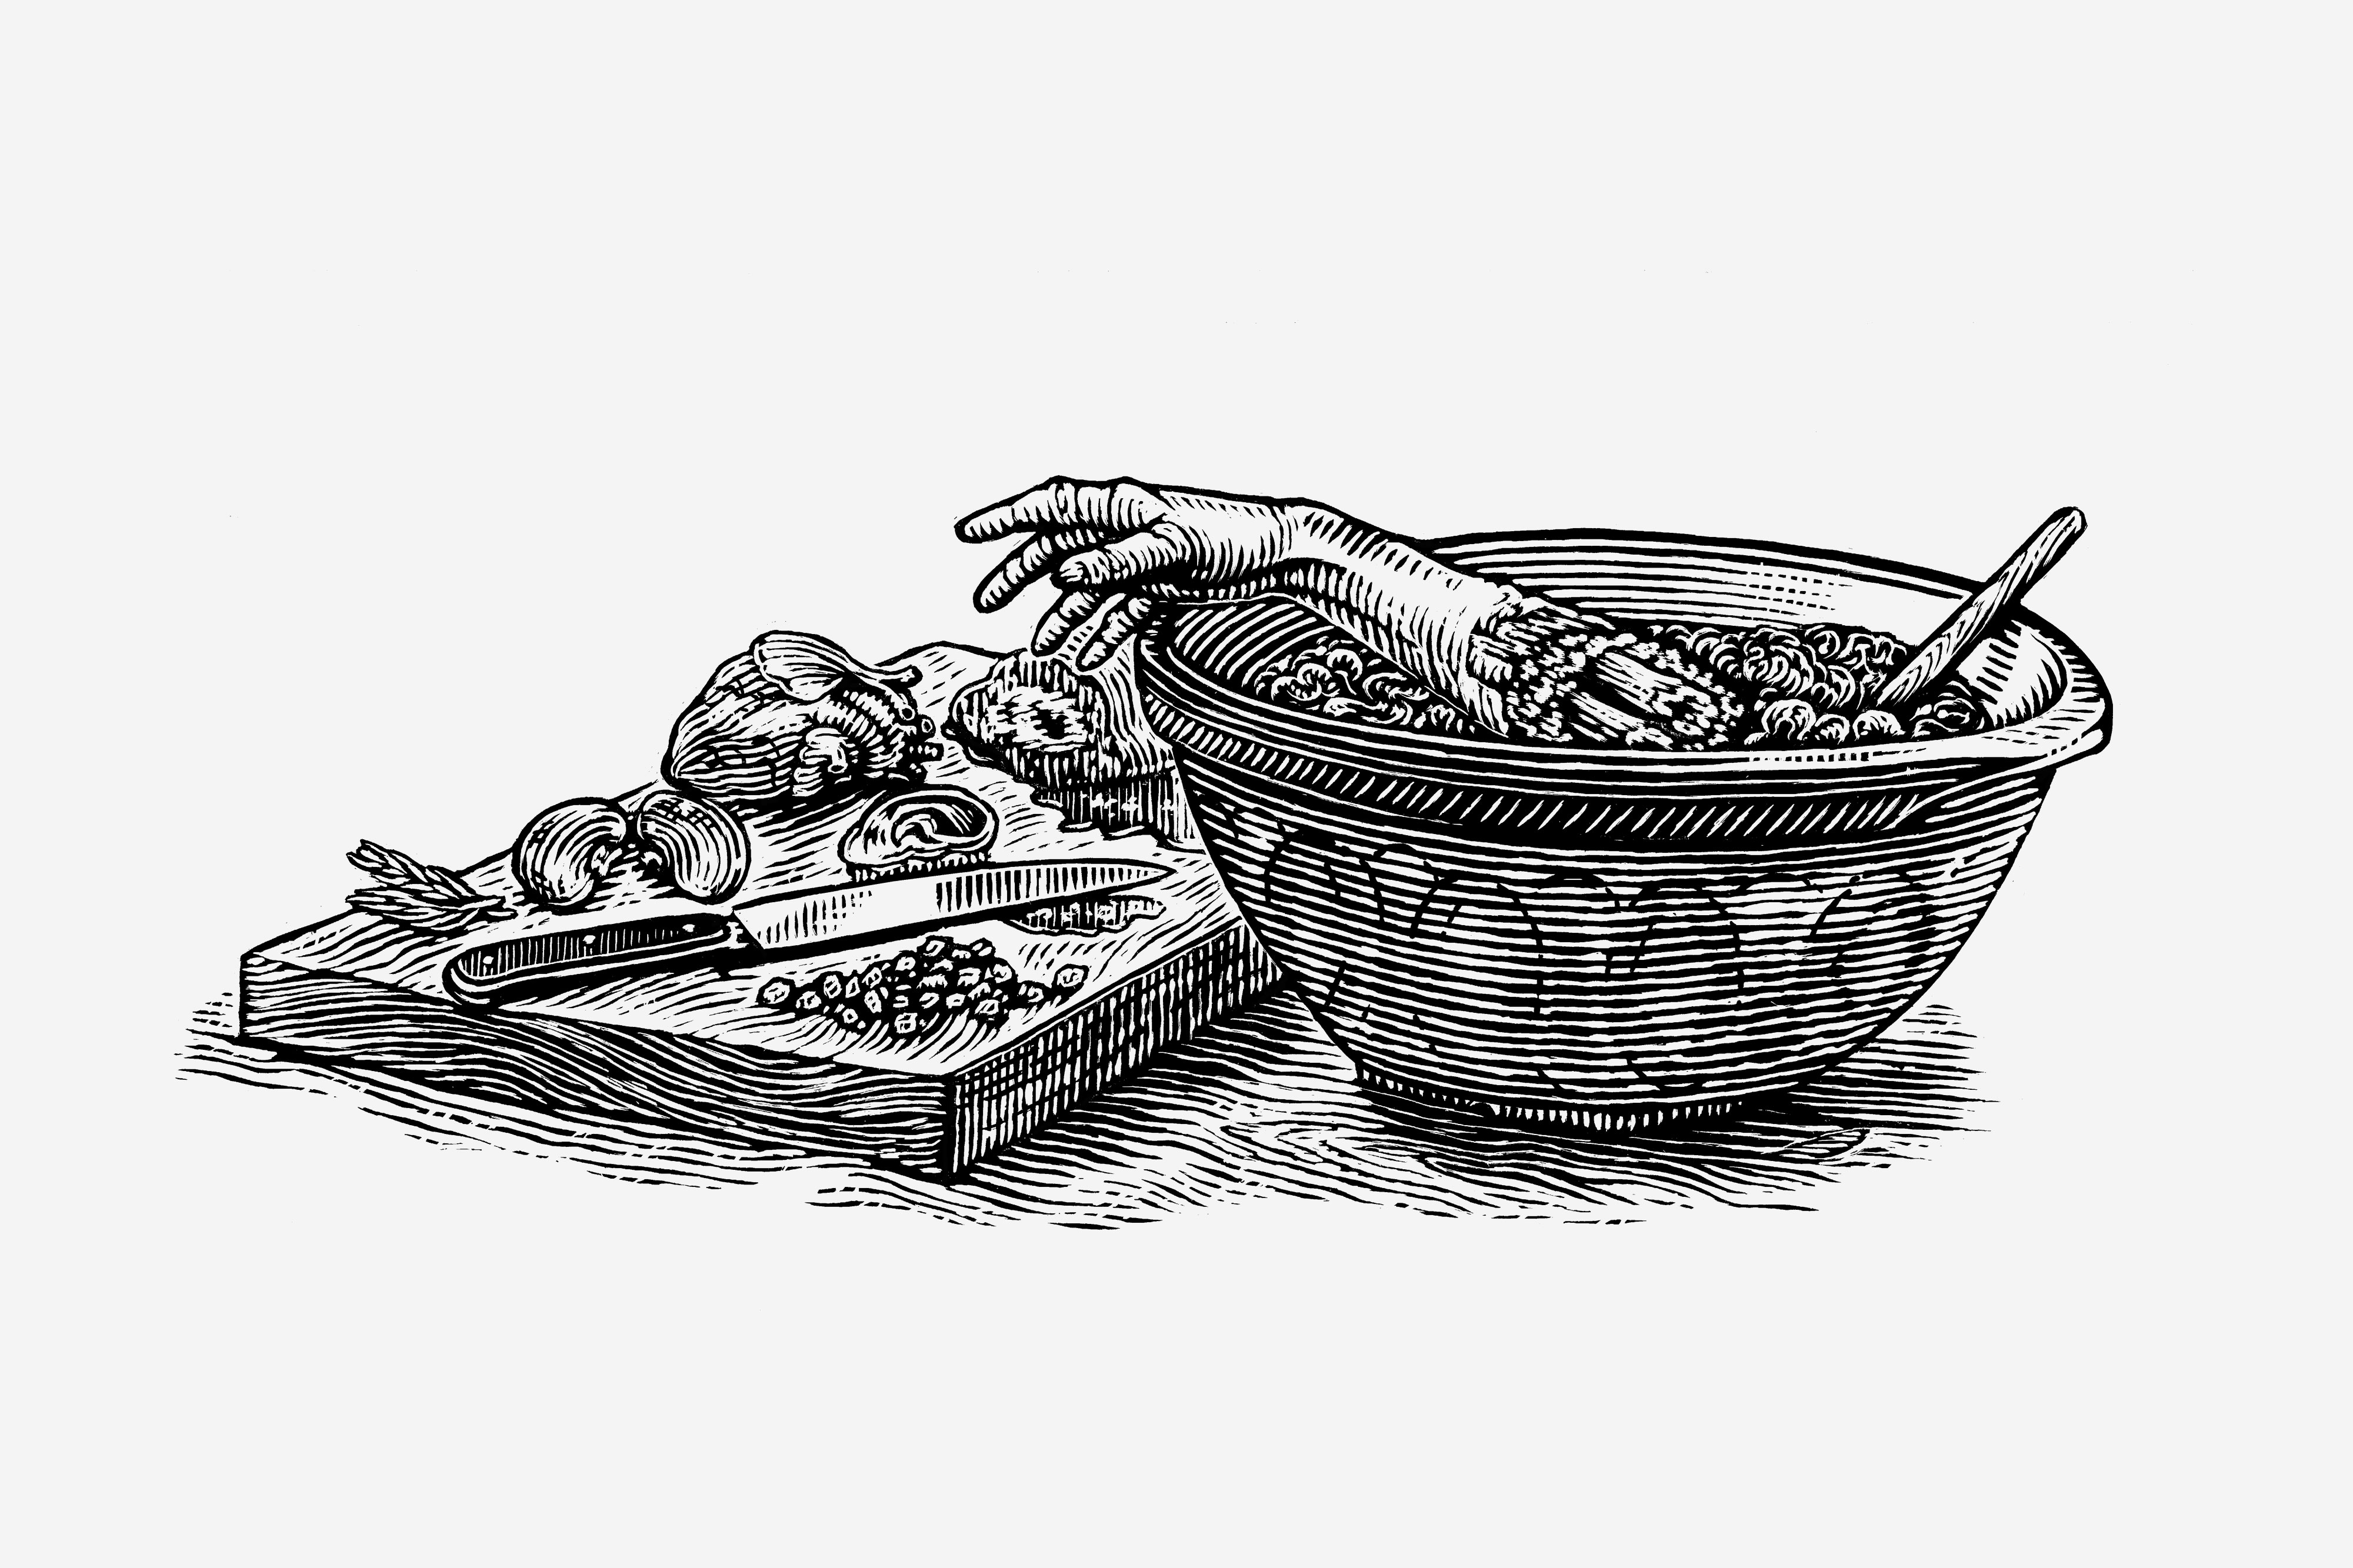 hsms_cookbook_illustration